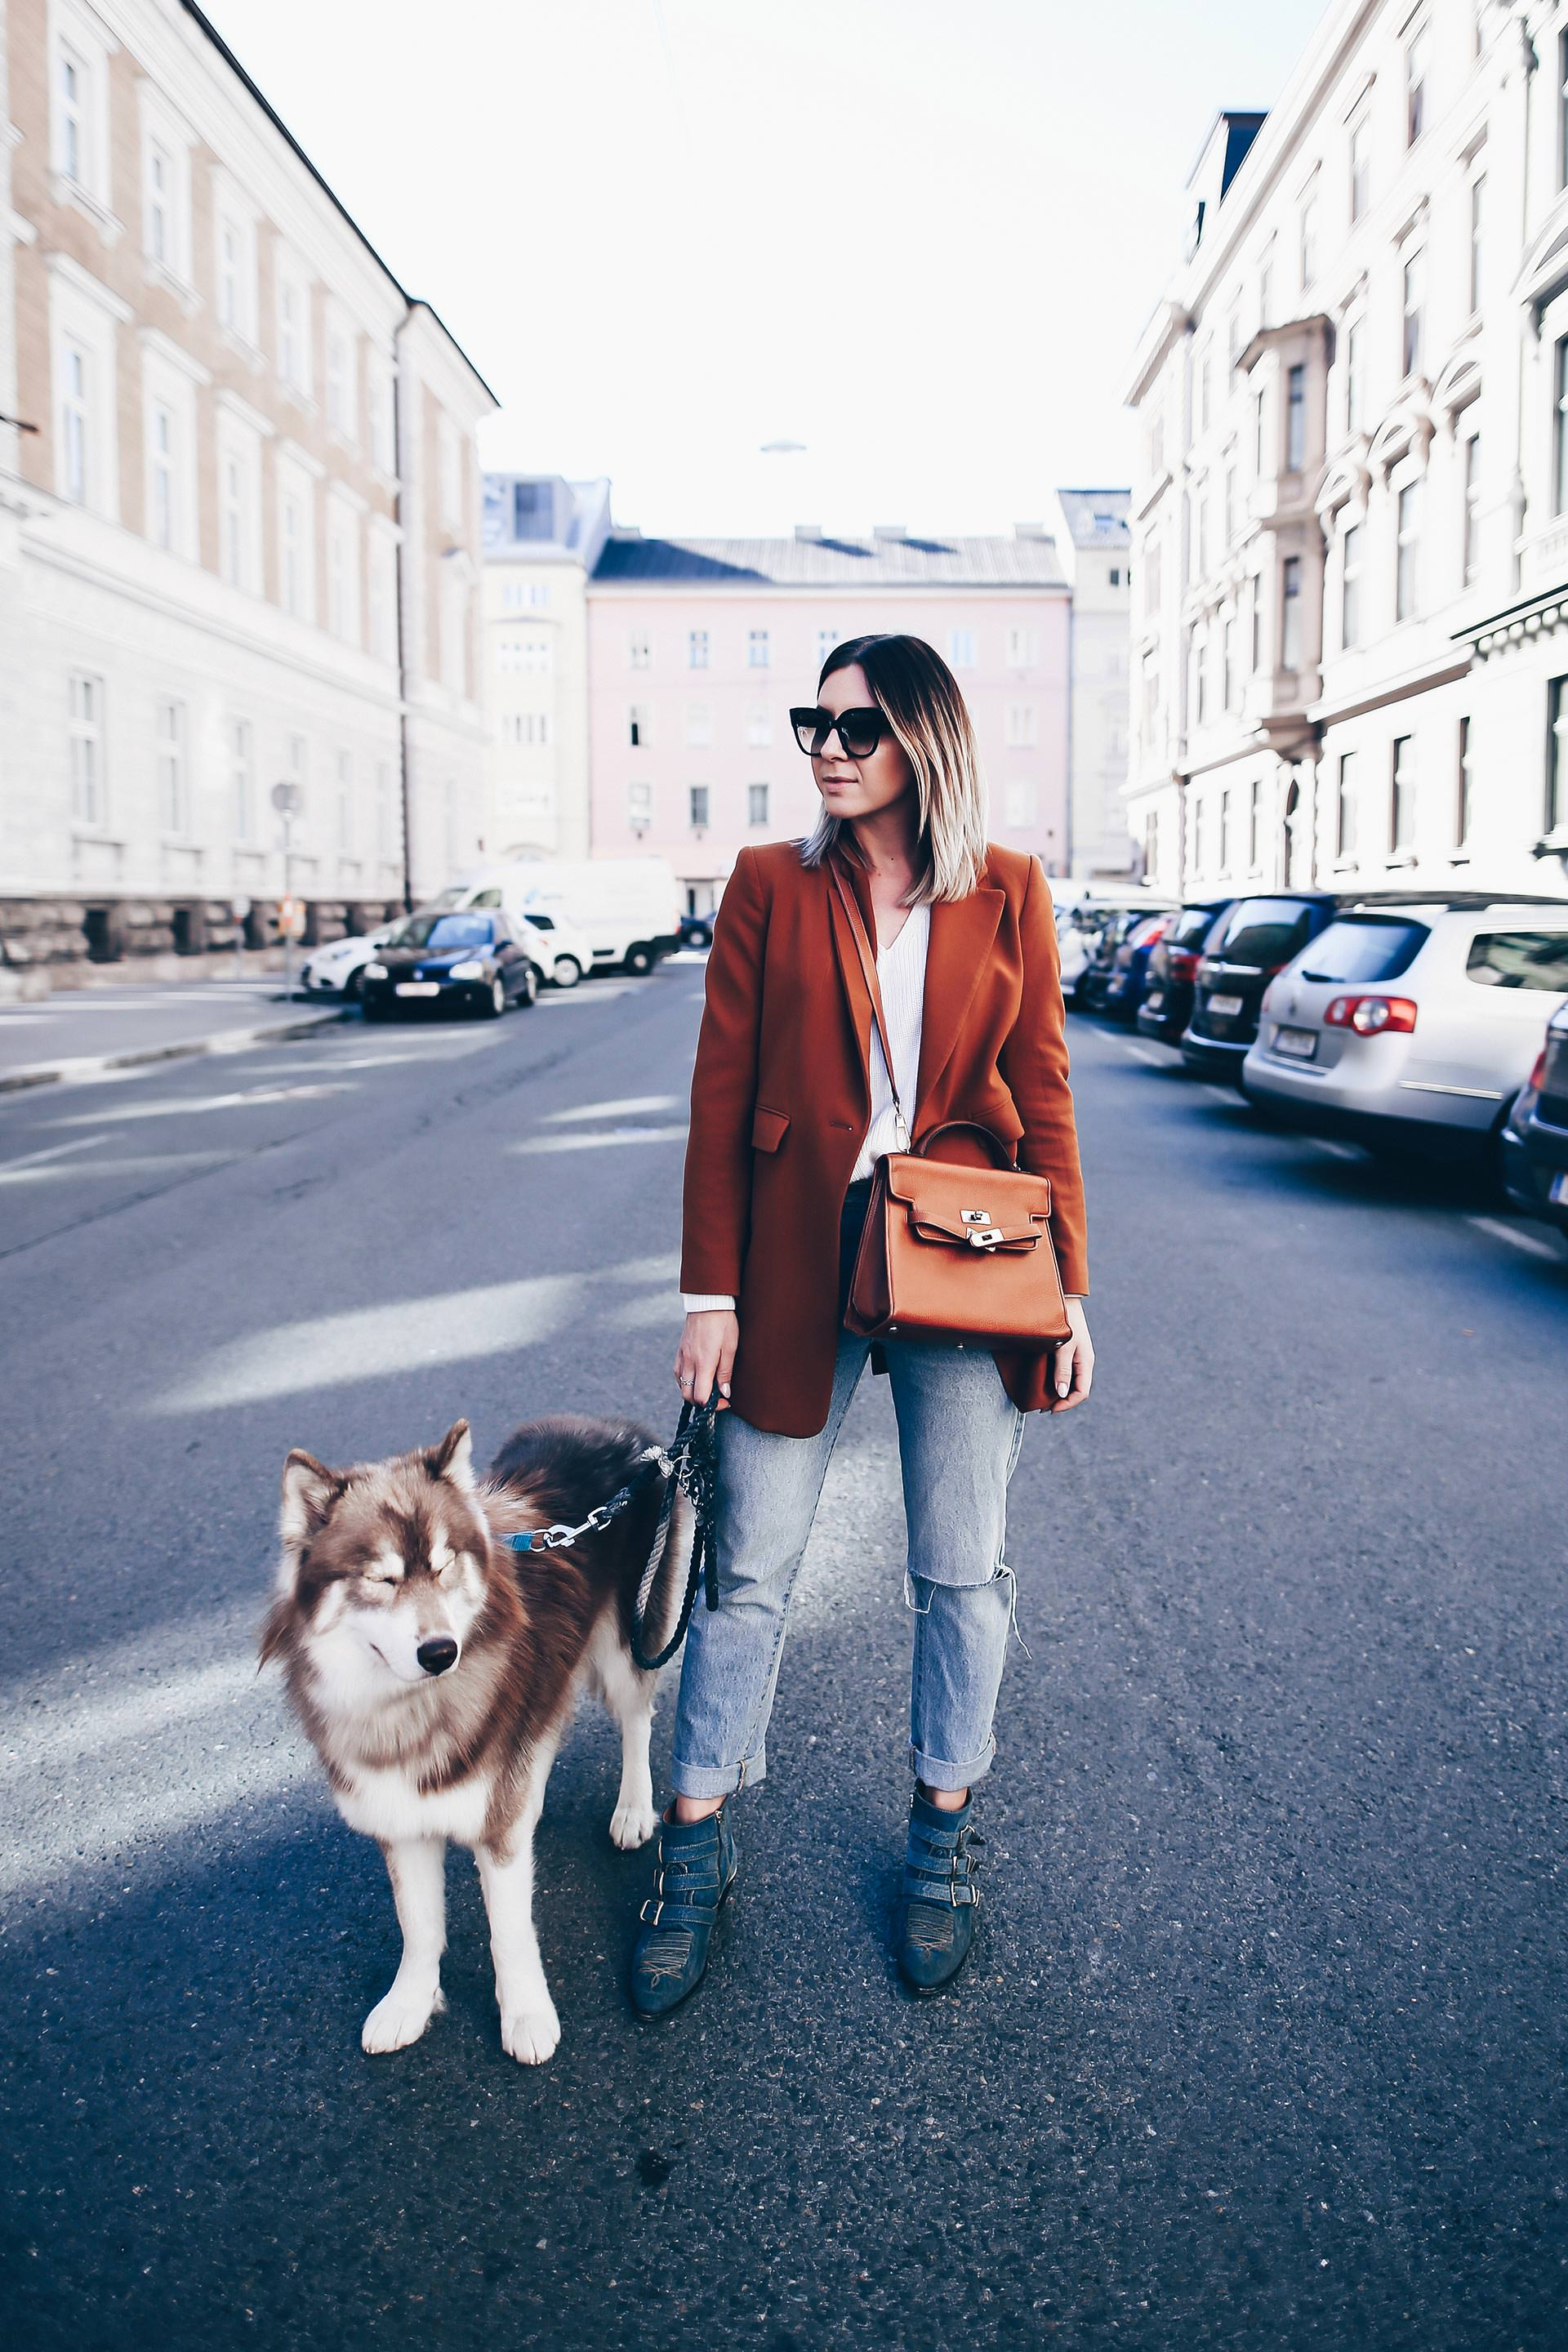 cognacfarbener Blazer und Mom Jeans im Herbst kombinieren, Chloé Susanna Boots Denim Look, Vintage Moschino Bag, Casual Chic Outfit, Fashion Blog, Modeblog, Outfits Blog, www.whoismocca.com